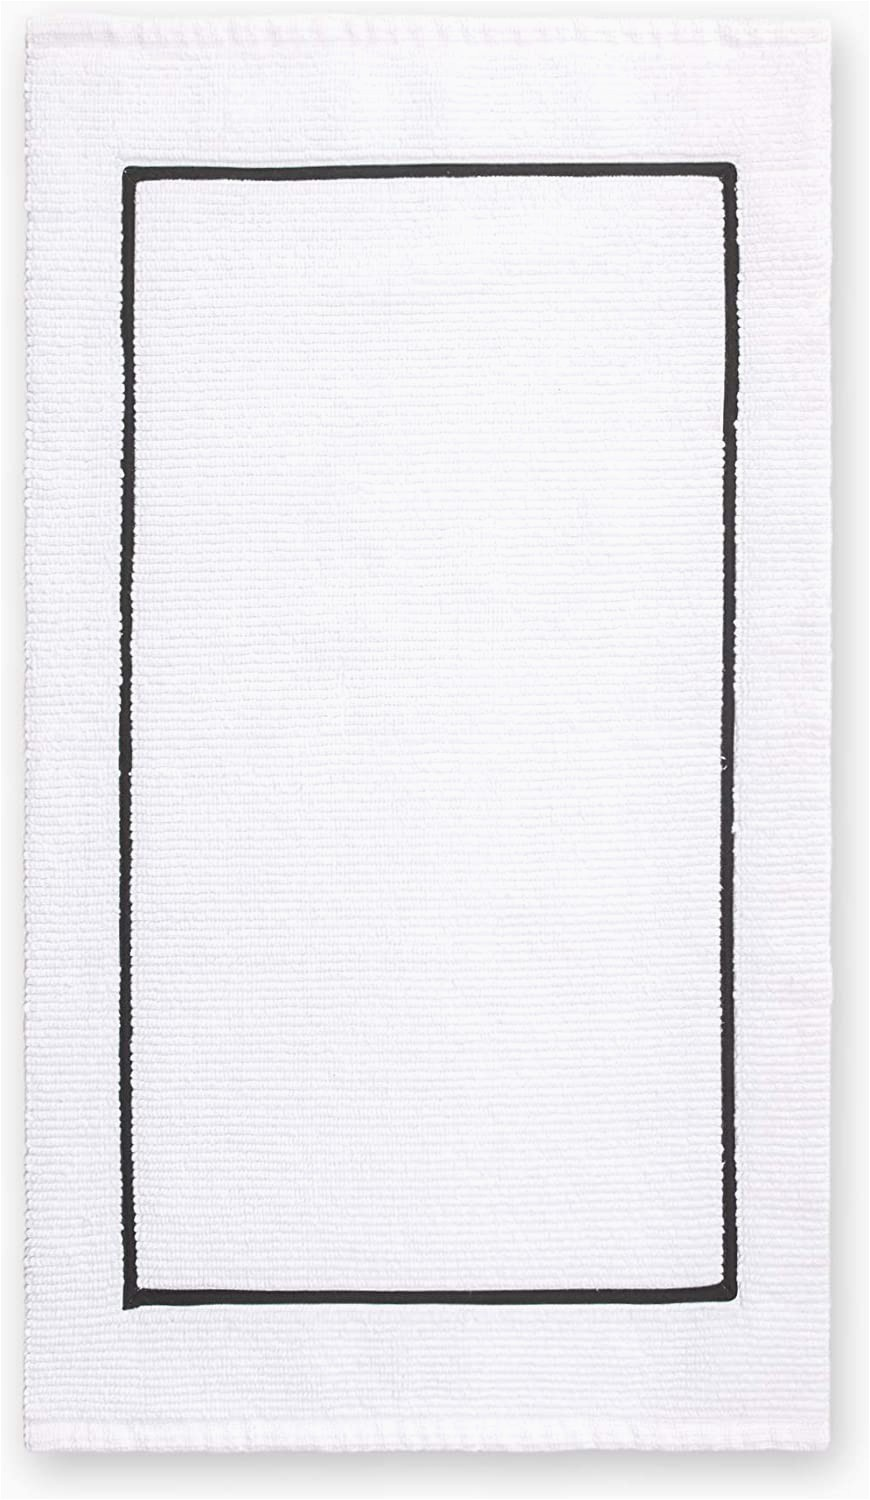 White Bath Rug with Black Border Calvin Klein Home Marcel Bath Rug White Black